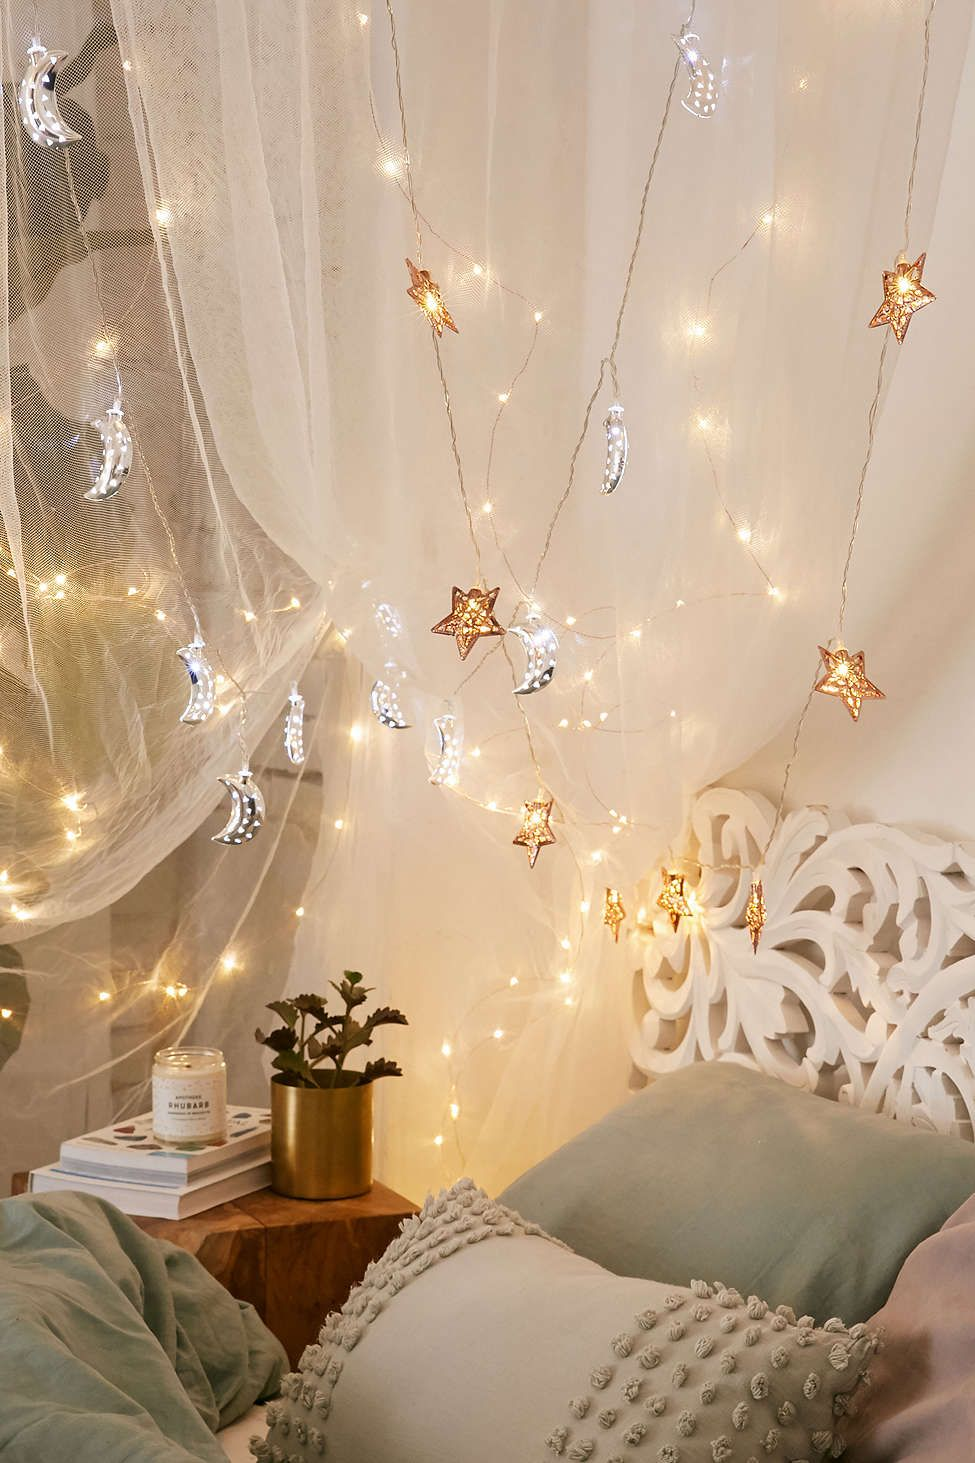 How To Hang String Lights From Ceiling Simple Copper Star String Lights  Pinterest  Star String Lights Urban Inspiration Design